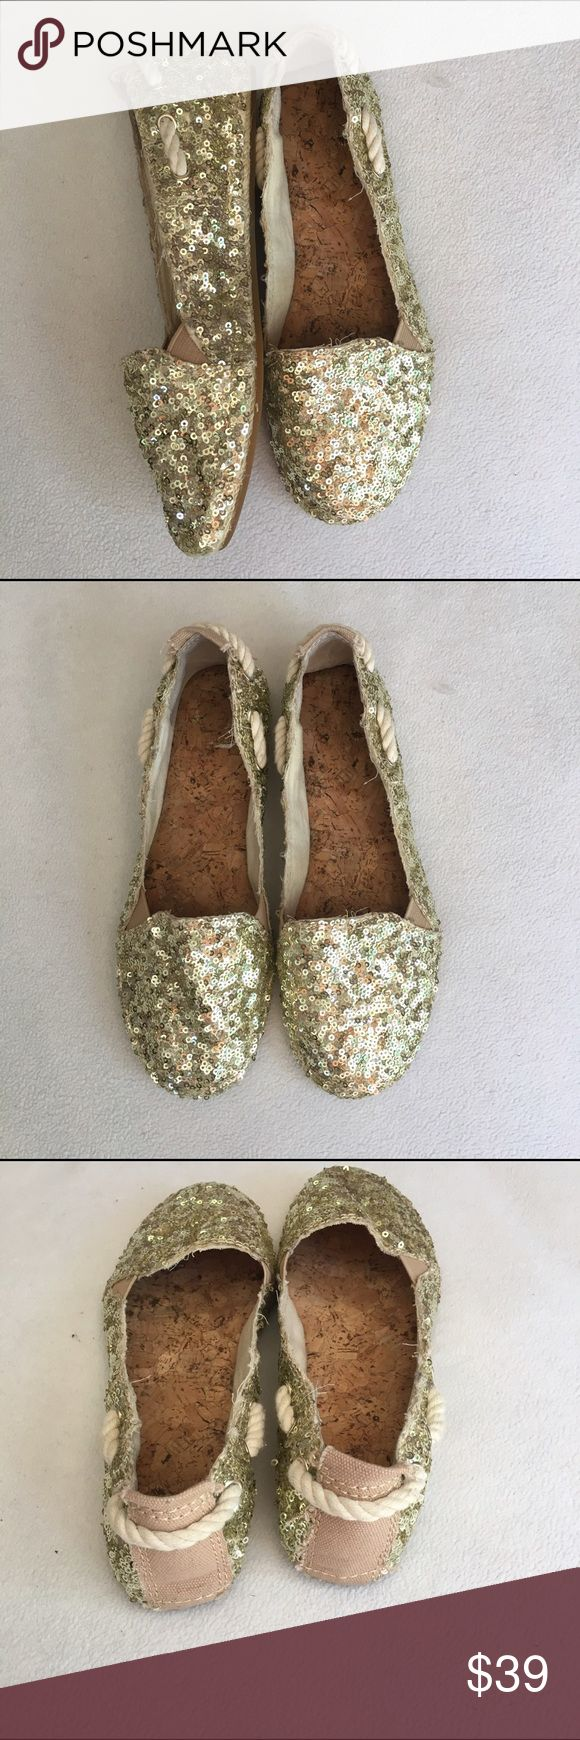 Little Gold Espadrilles size 6 Gianni Bini Gianni Bini size 6. Literally worn once, little to no signs of wear. Gold, shimmery shoes with rope detail. ⭐️open to all offers!⭐️ Gianni Bini Shoes Flats & Loafers